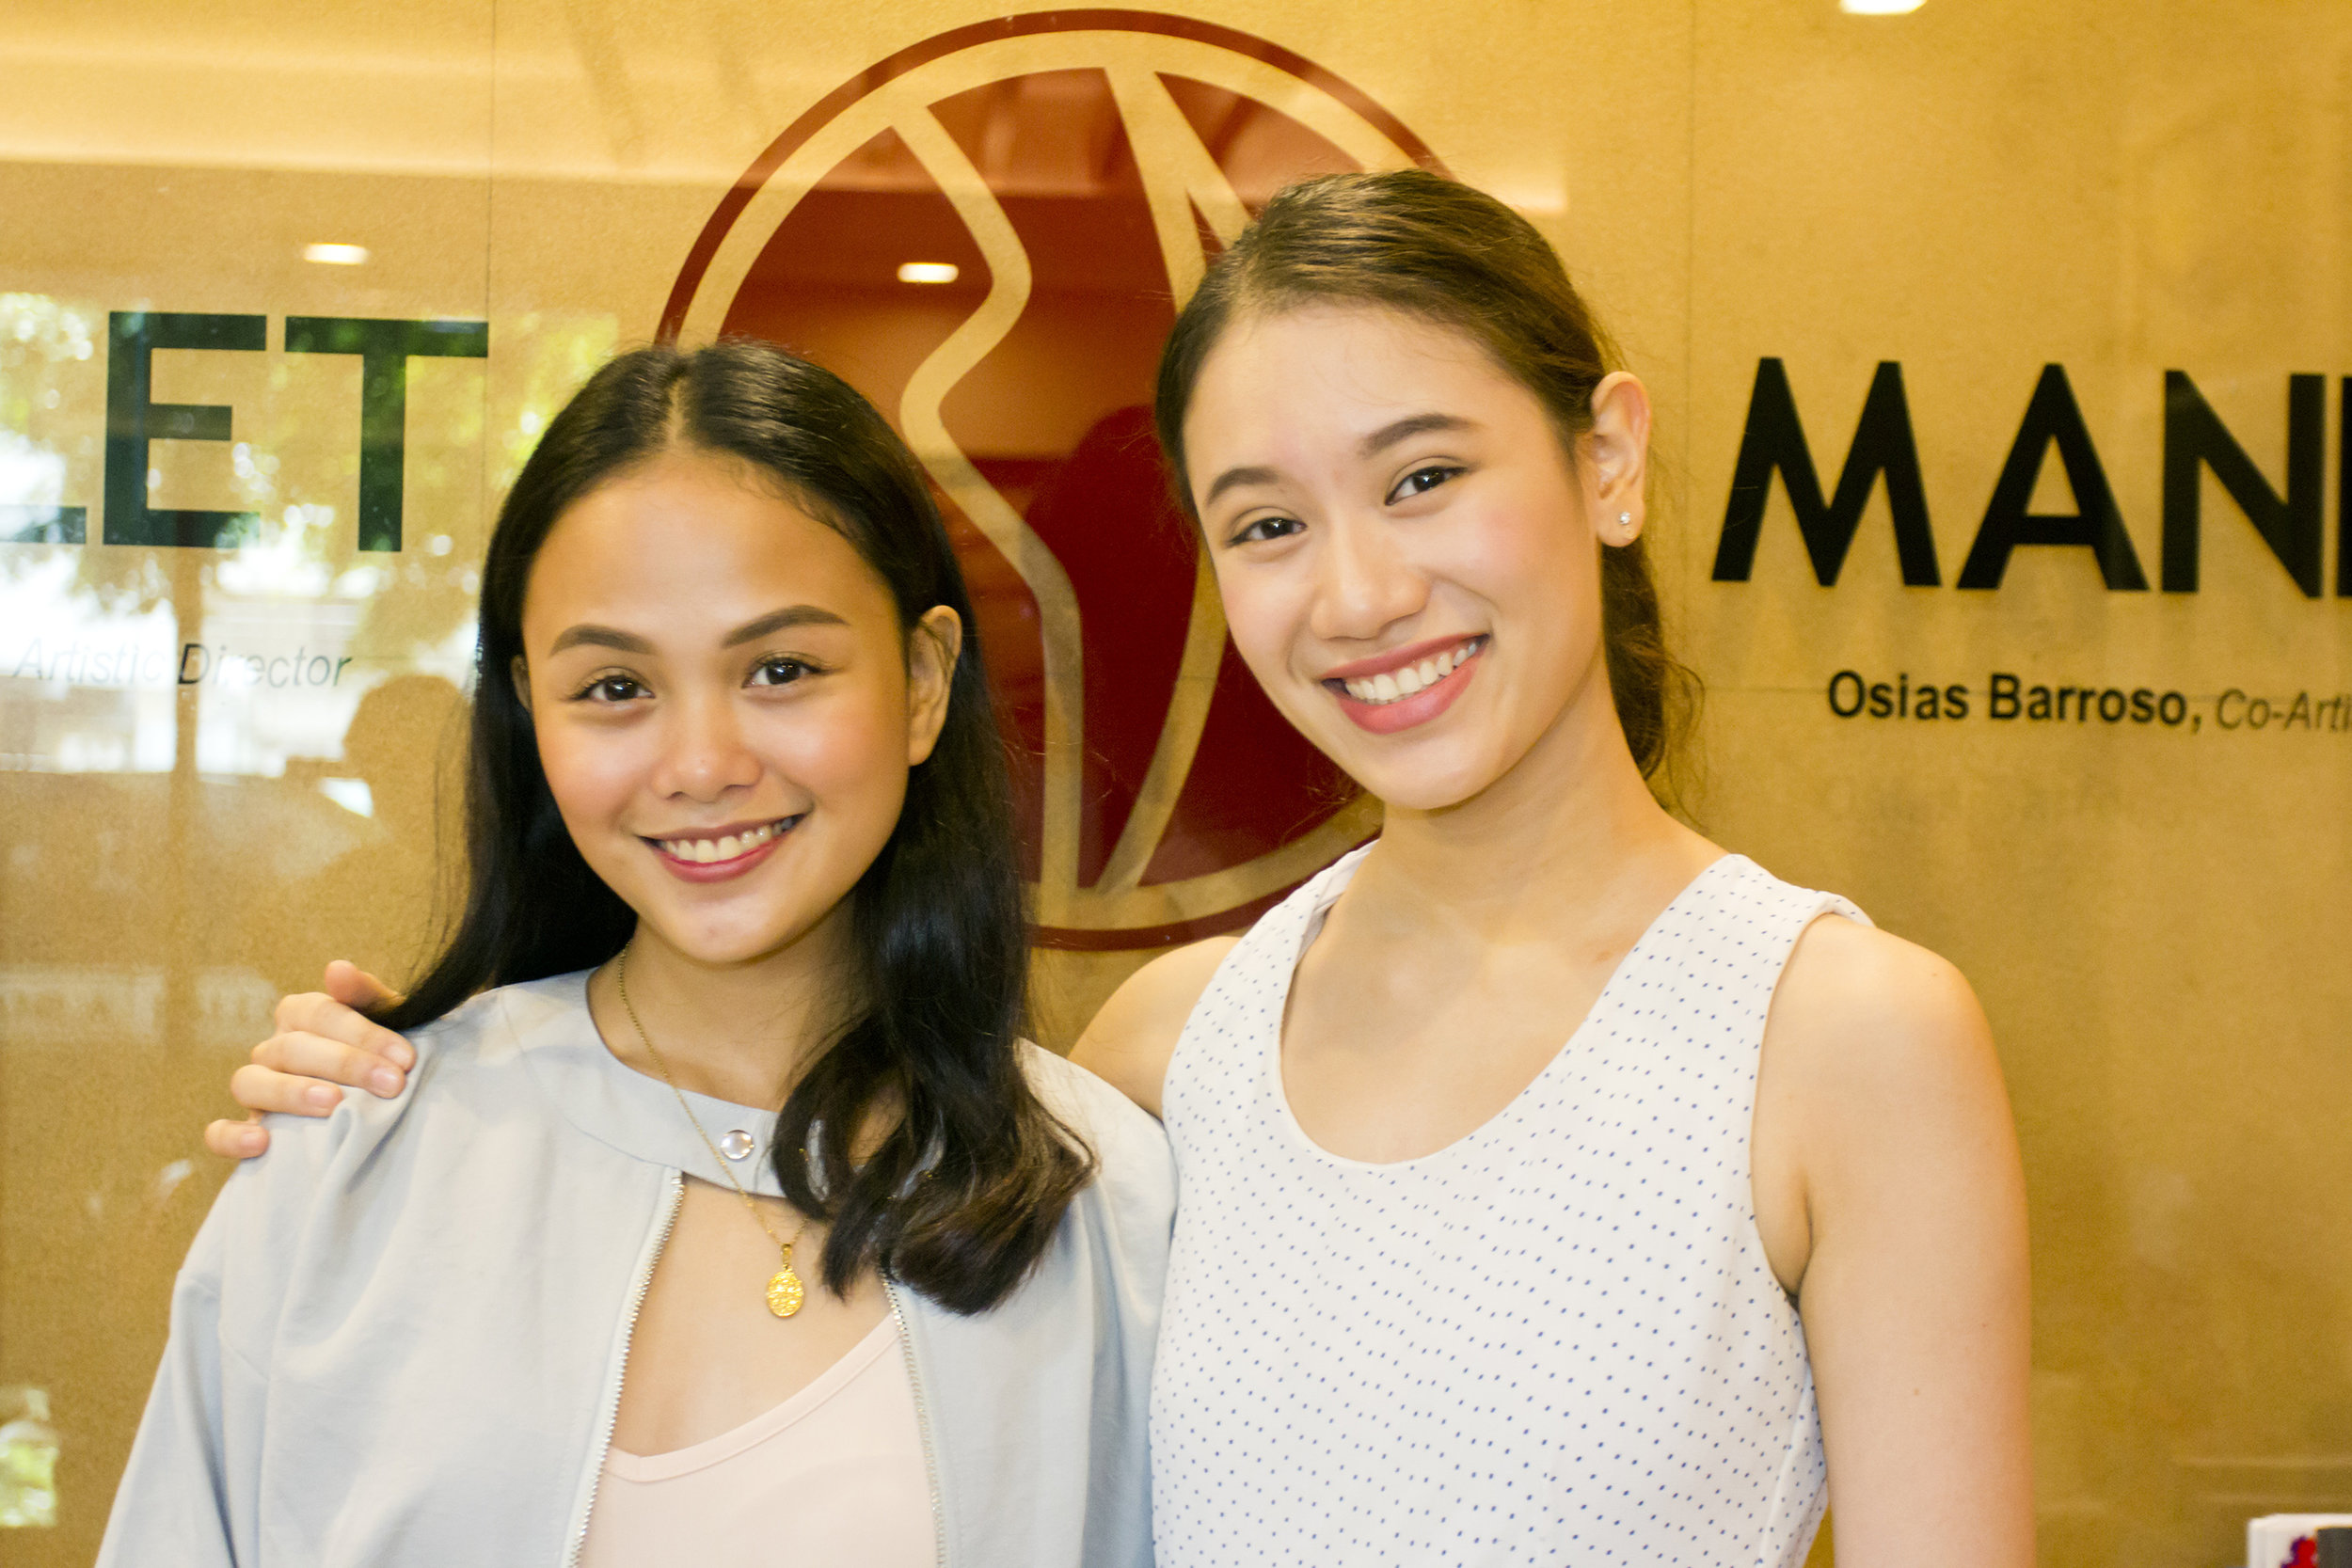 While both are satisfied with their respective performances as Carmen and are willing to play her again, Abi and Rissa May jokingly hope it won't be anytime soon because of the emotional intensity the role entailed. Photo by Jimmy Villanueva